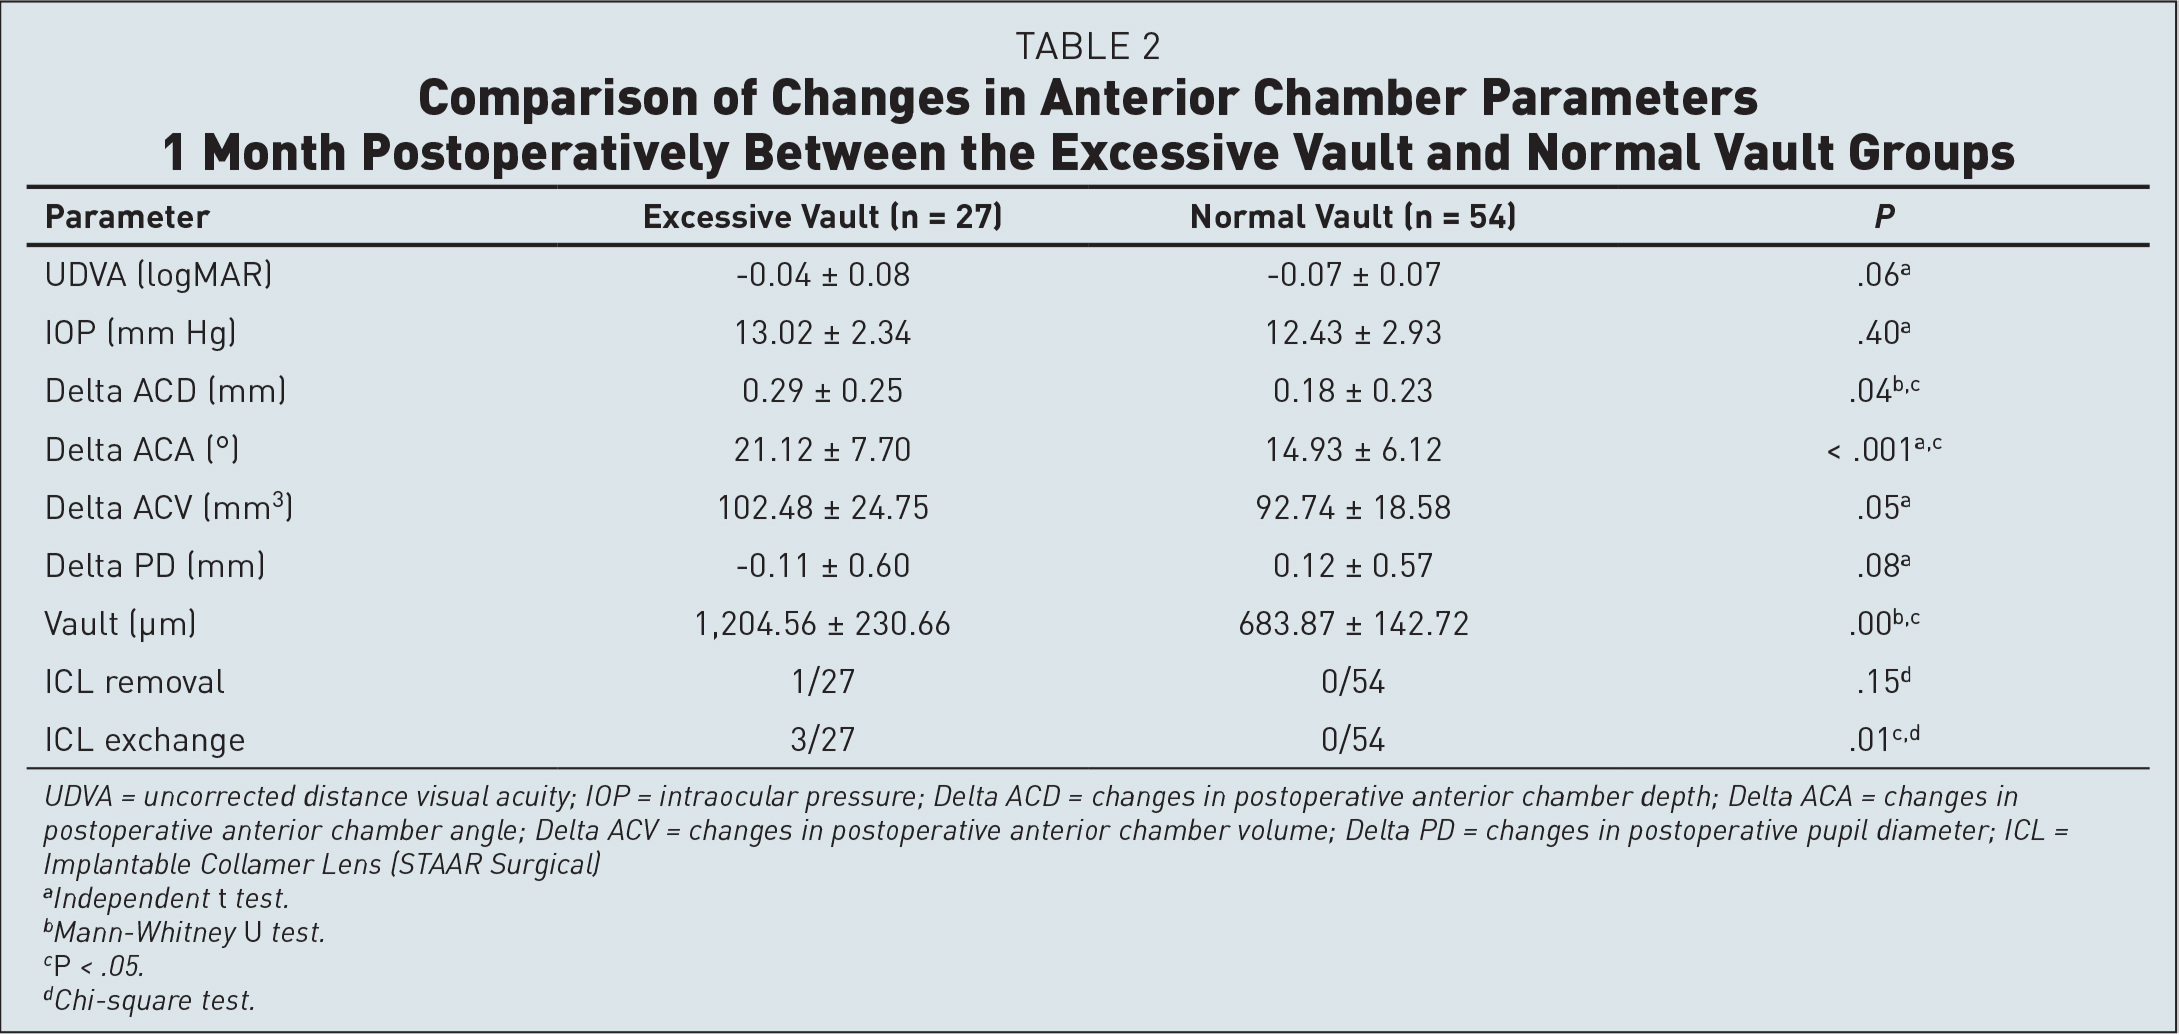 Comparison of Changes in Anterior Chamber Parameters 1 Month Postoperatively Between the Excessive Vault and Normal Vault Groups